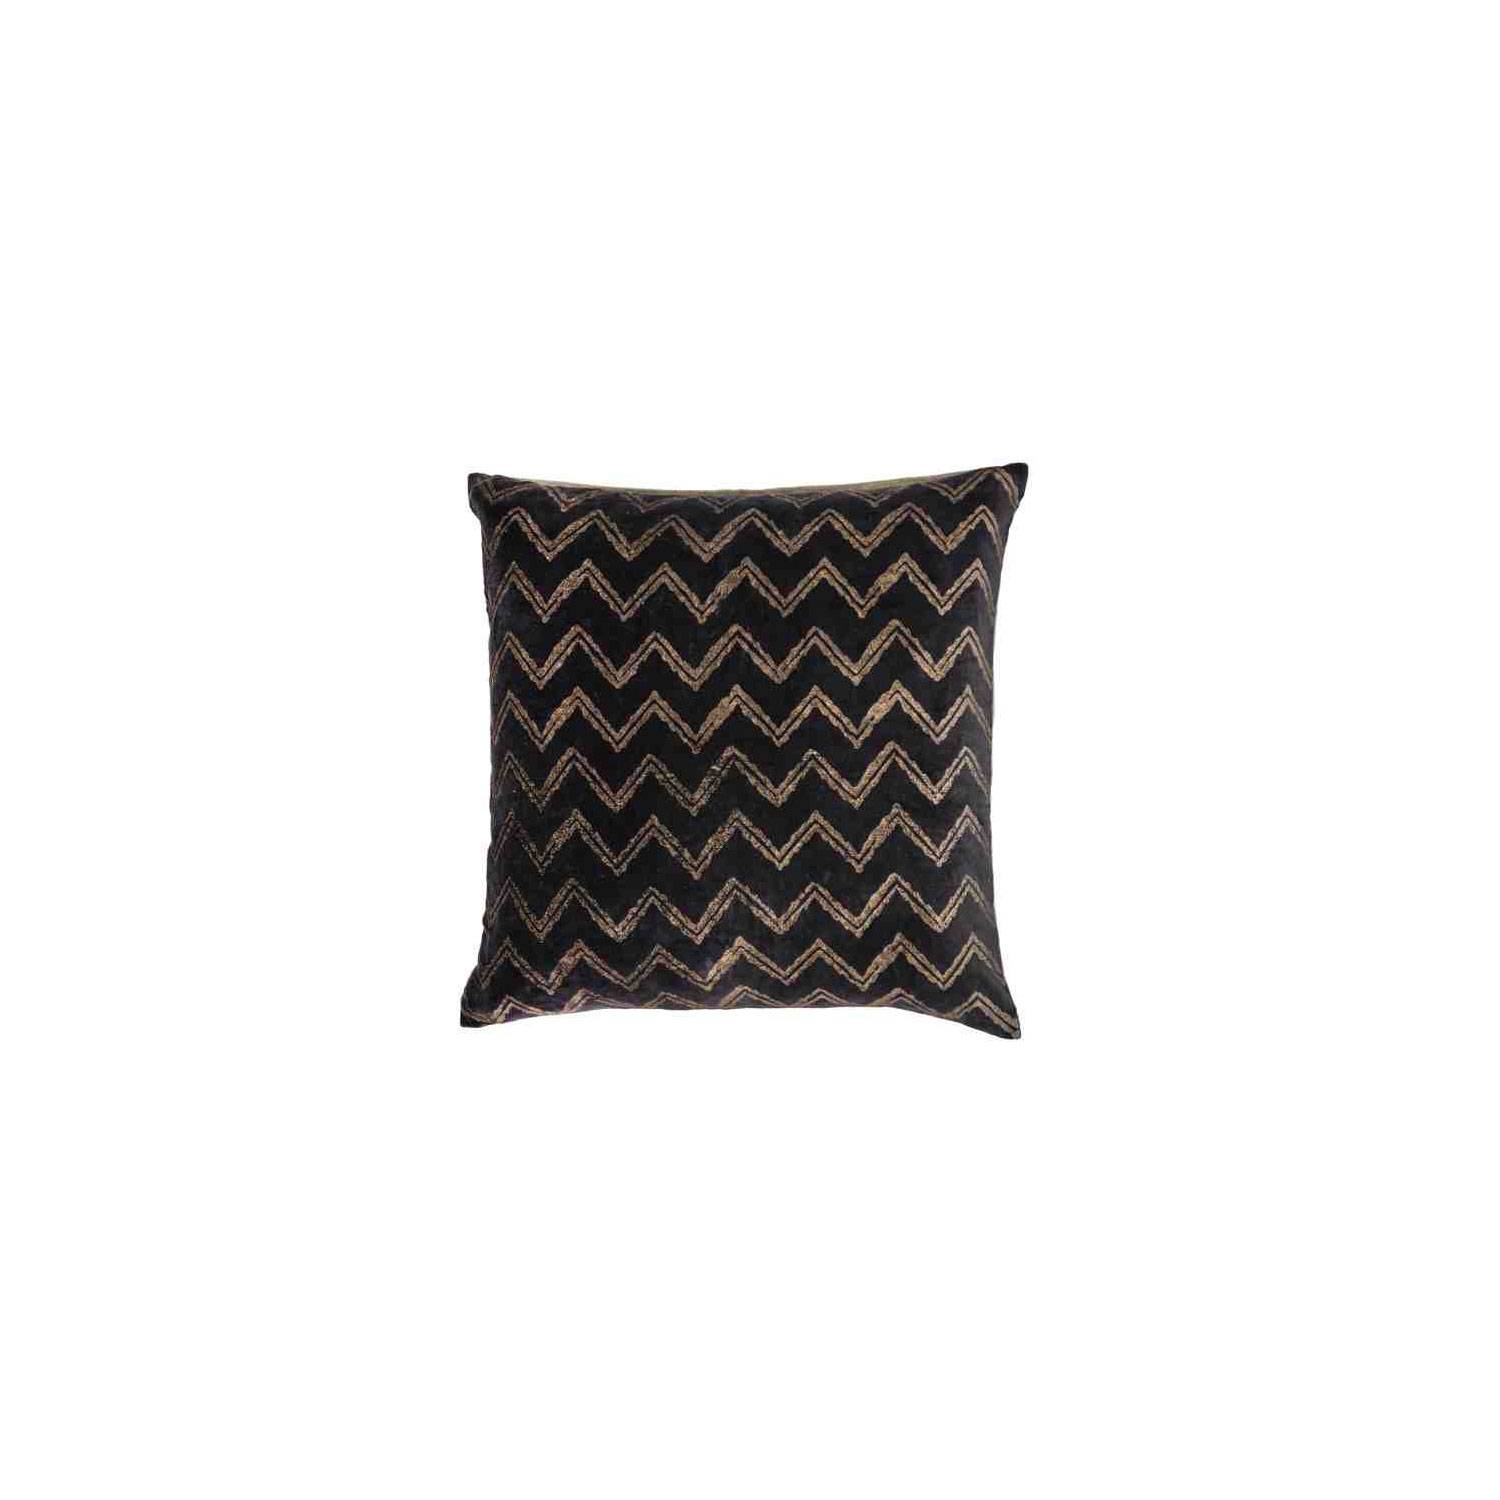 Day Home Day Zigzag Cushion Cover 50x50 cm, Unblack